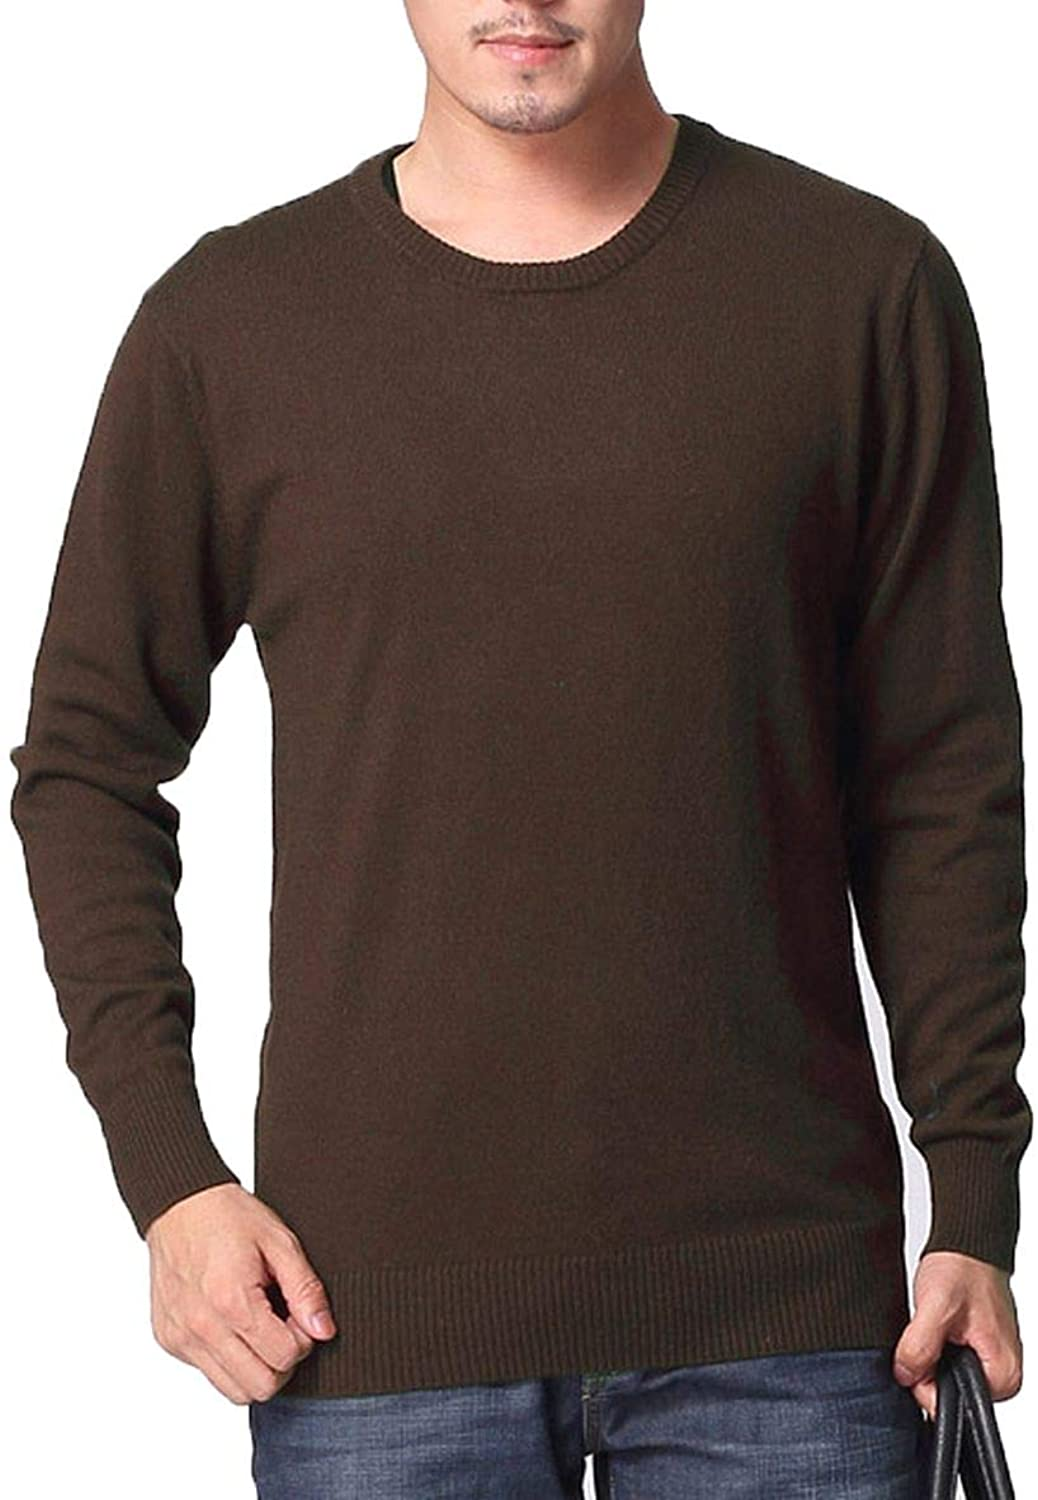 YBEERNSON Men O Neck Wool Cashmere Blended Sweater Pullover Mens Basic Sweaters